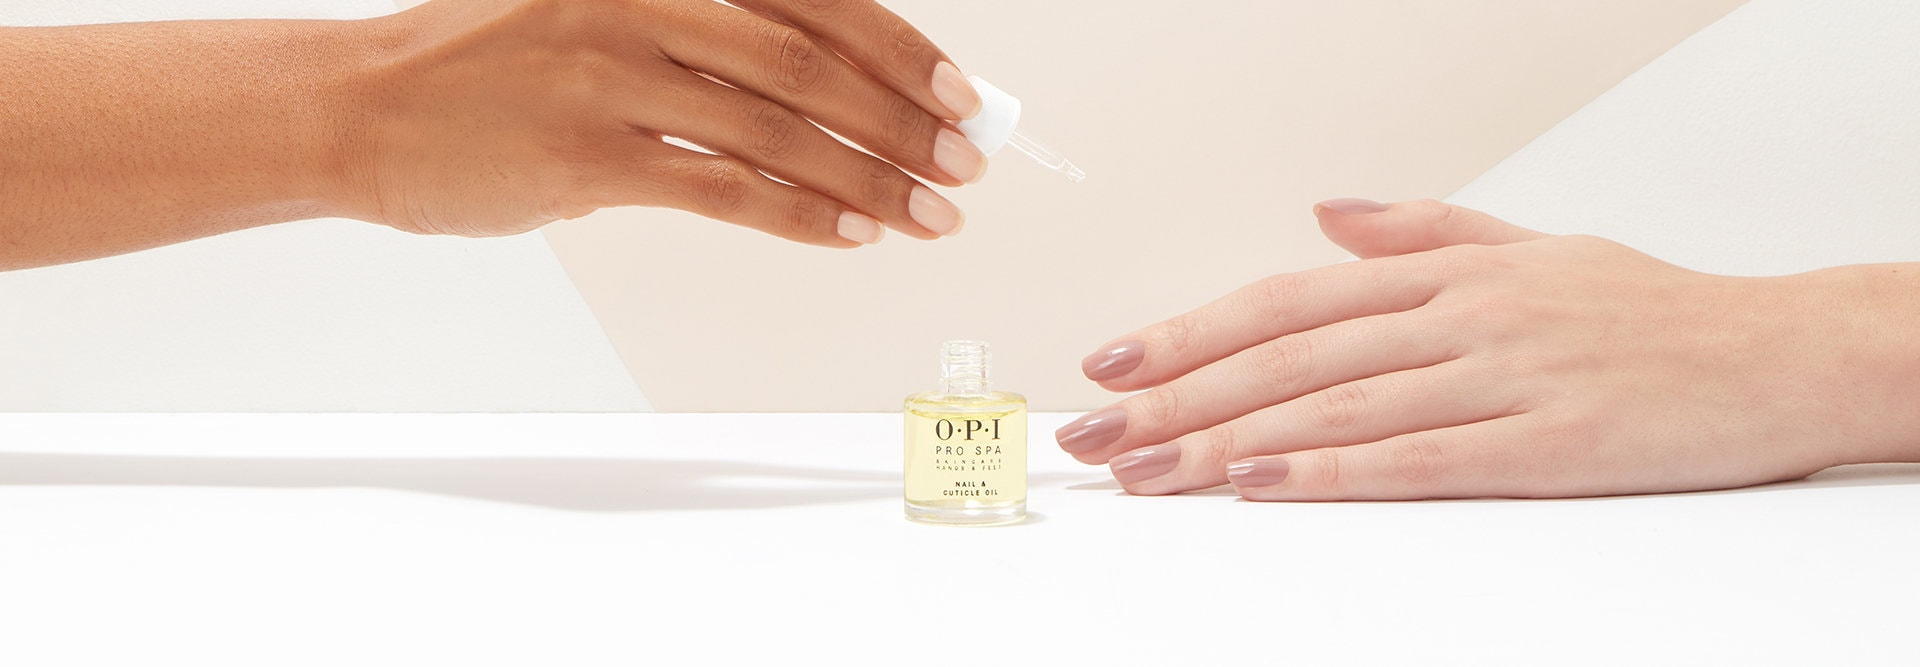 Nail Envy Nail Treatment